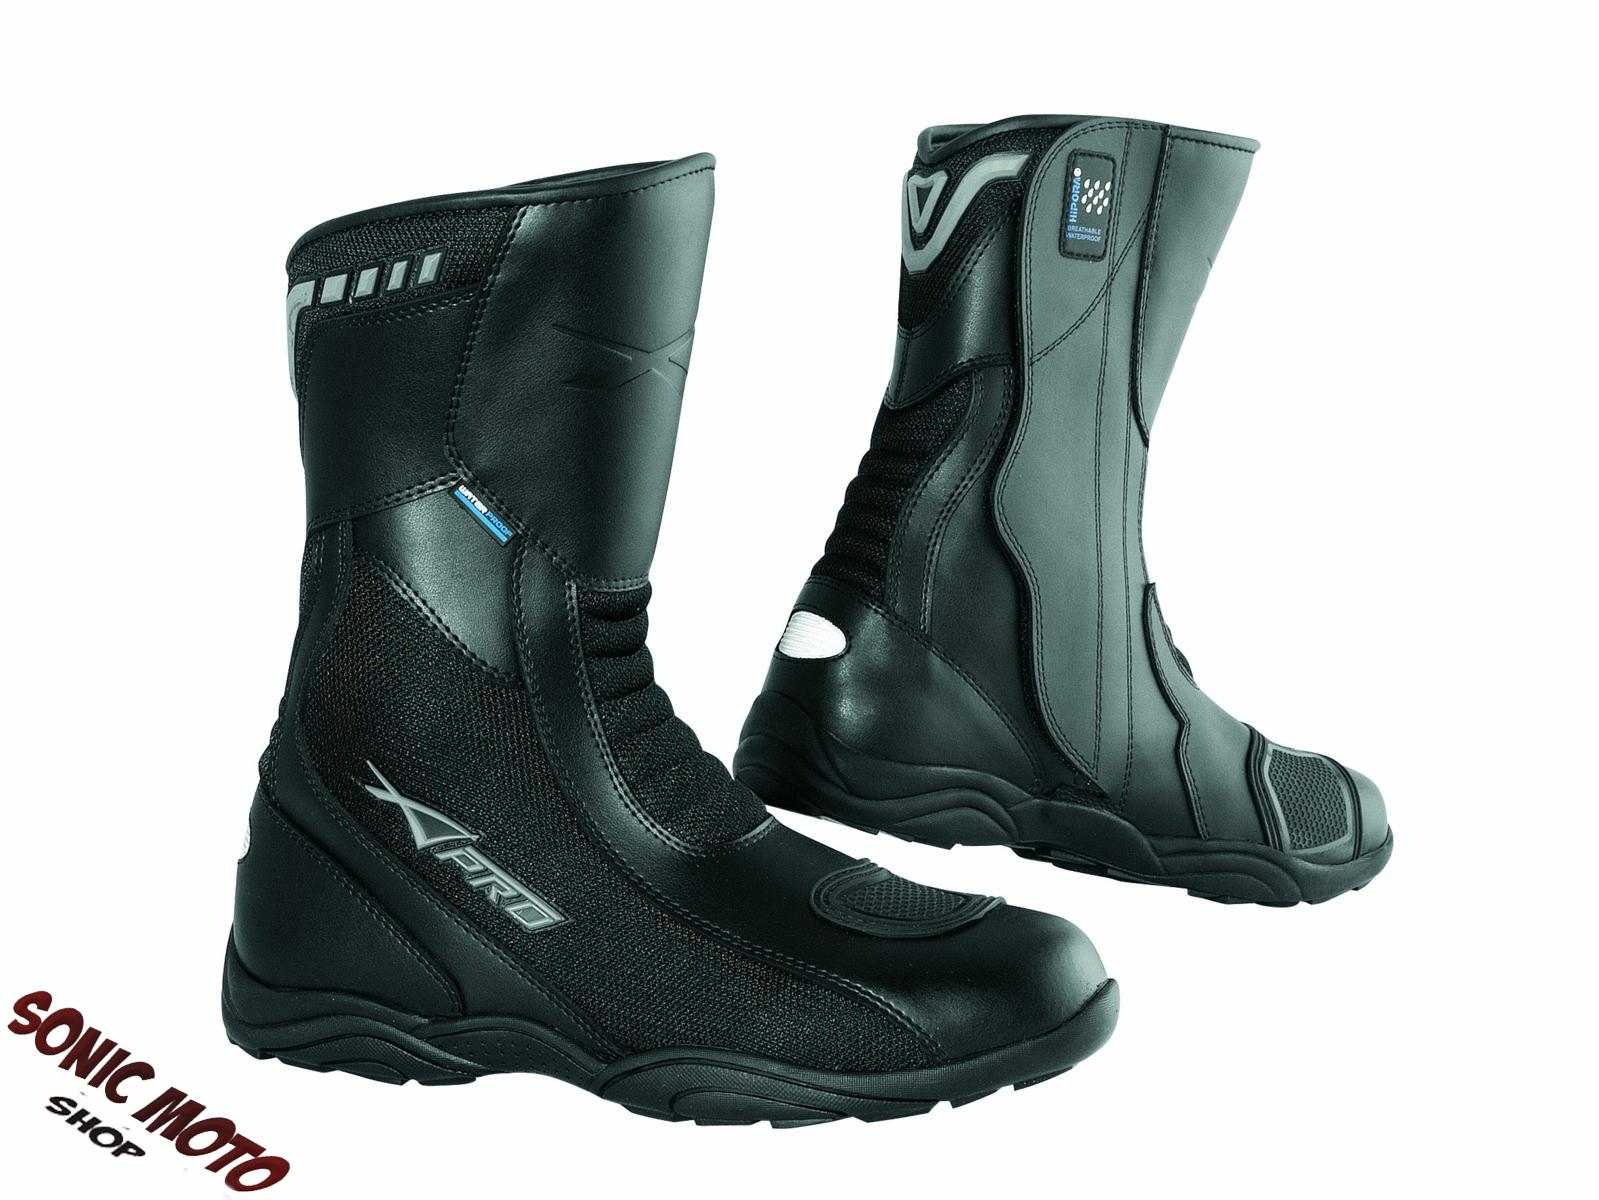 Waterproof Breathable Boots Touring Sports Motorcycle Apparel Leather